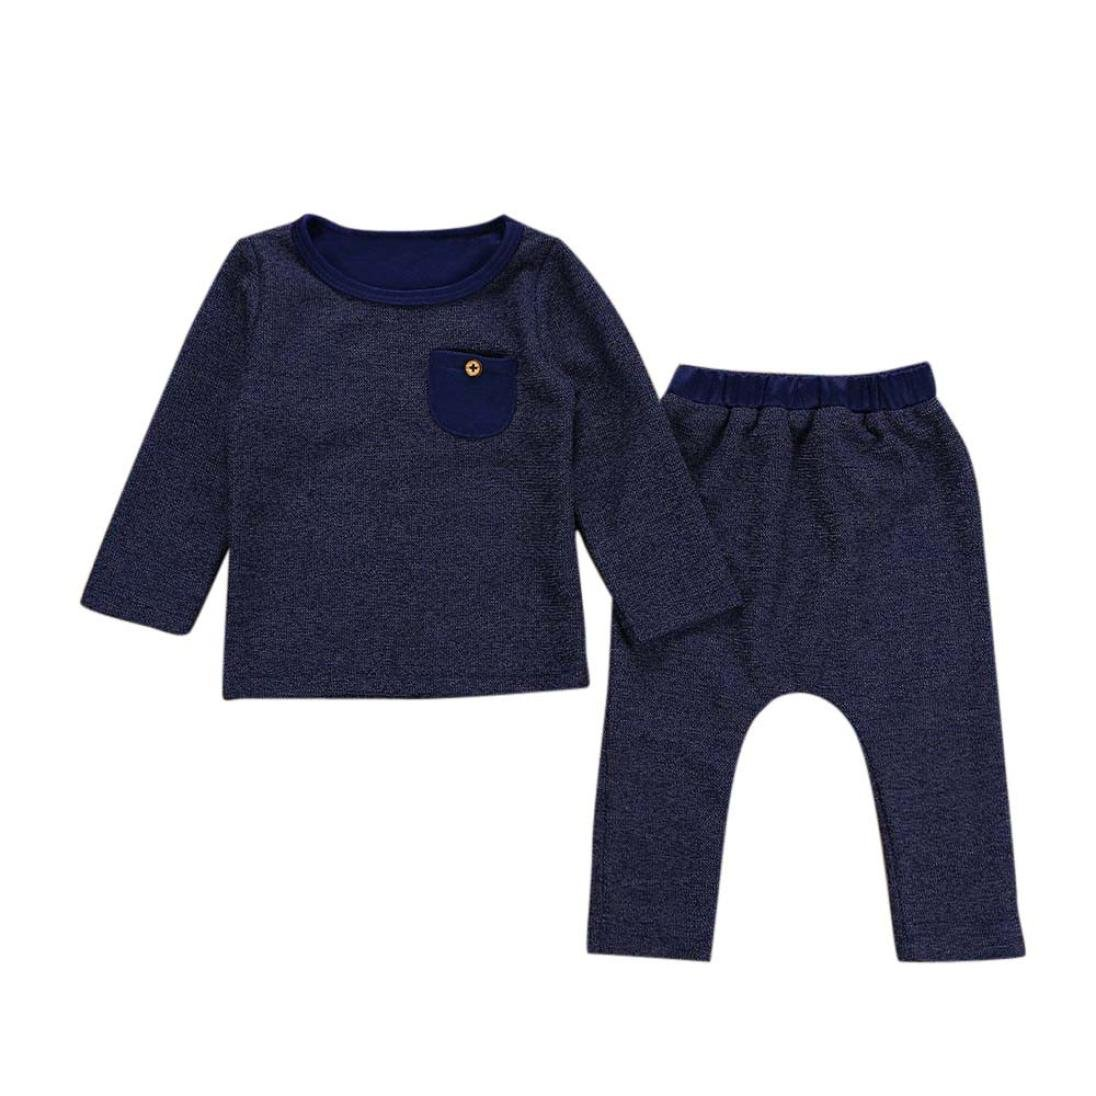 WARMSHOP Boys 2-Piece Navy Solid Pocket Tops Blouse+Elastic Pants Outside Casual Cotton Clothing Warm Outfits Set